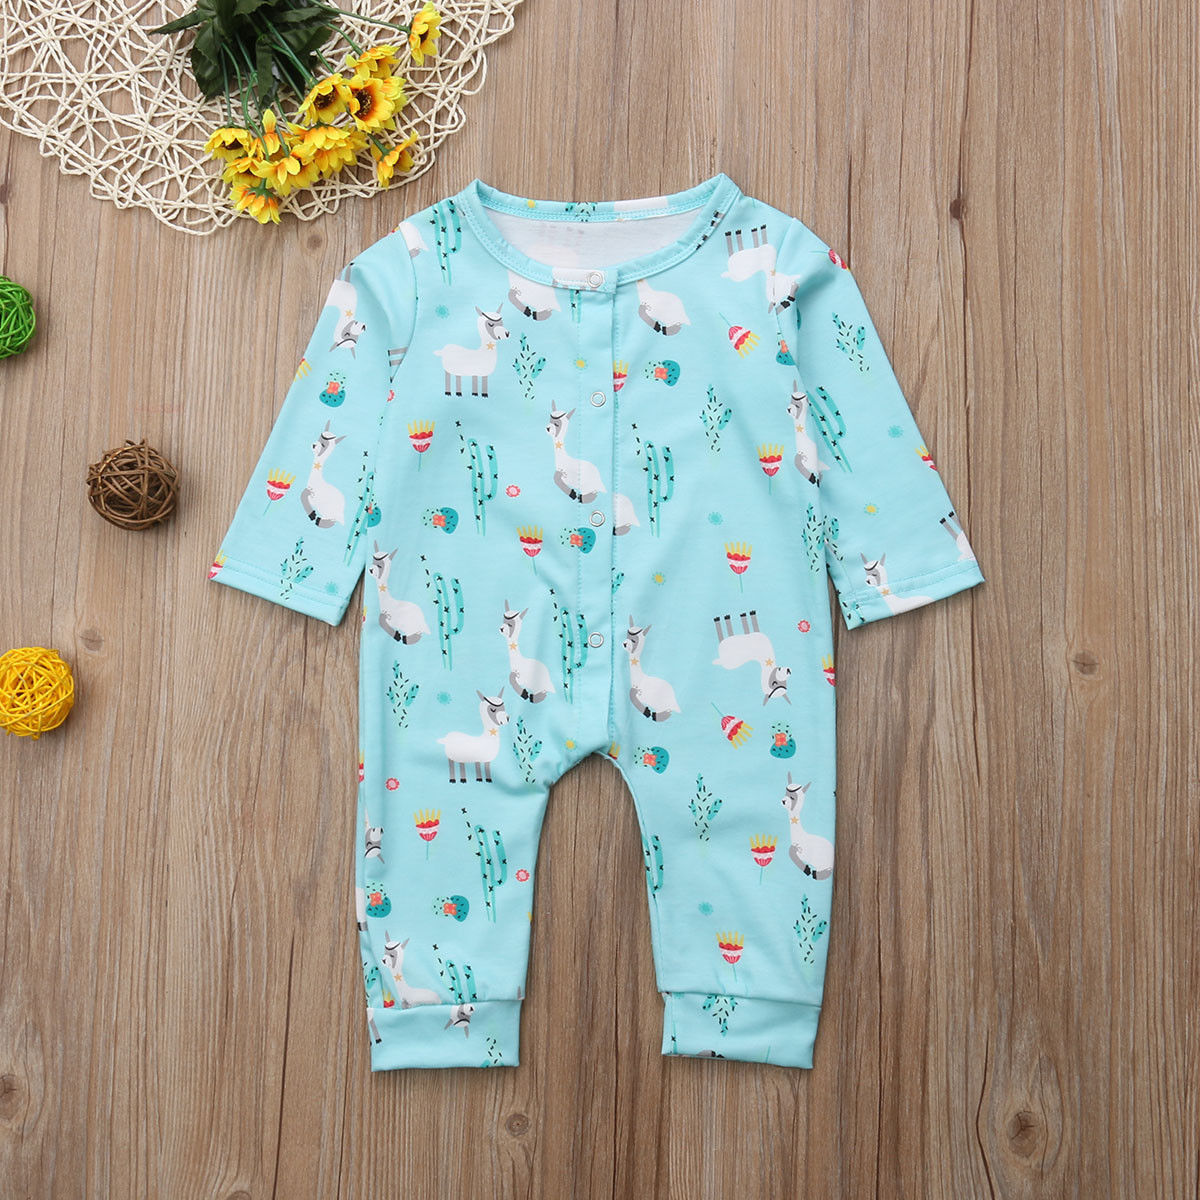 a4b3800be Pudcoco Infant Newborn Baby Boy Girl Jumpsuit Romper Clothes ...